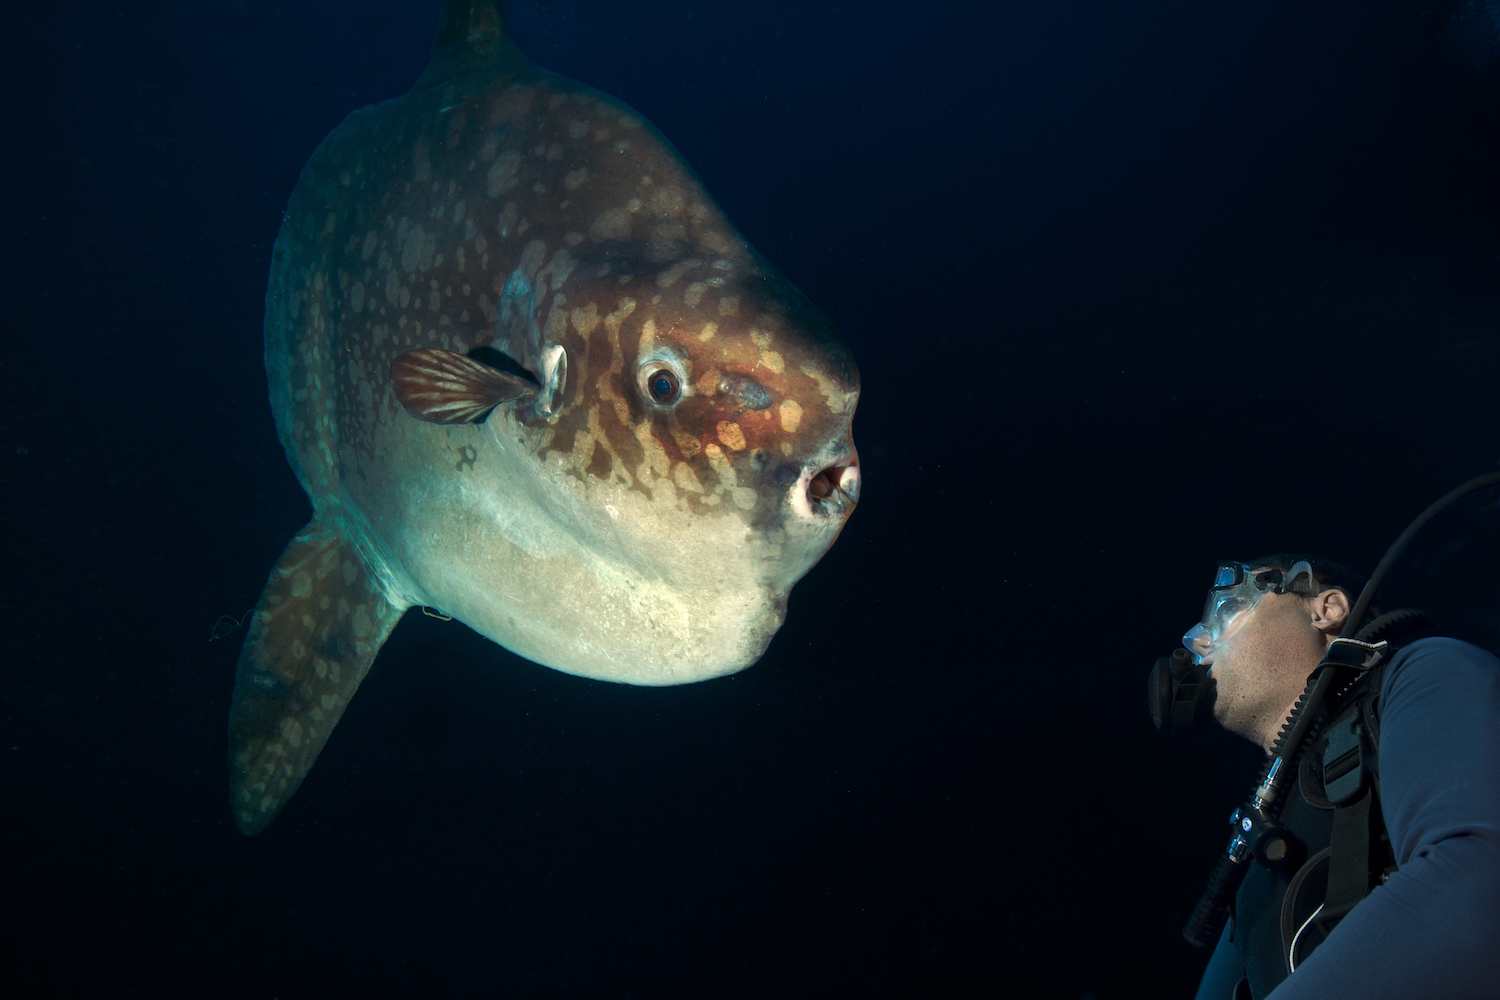 night diving with mola mola